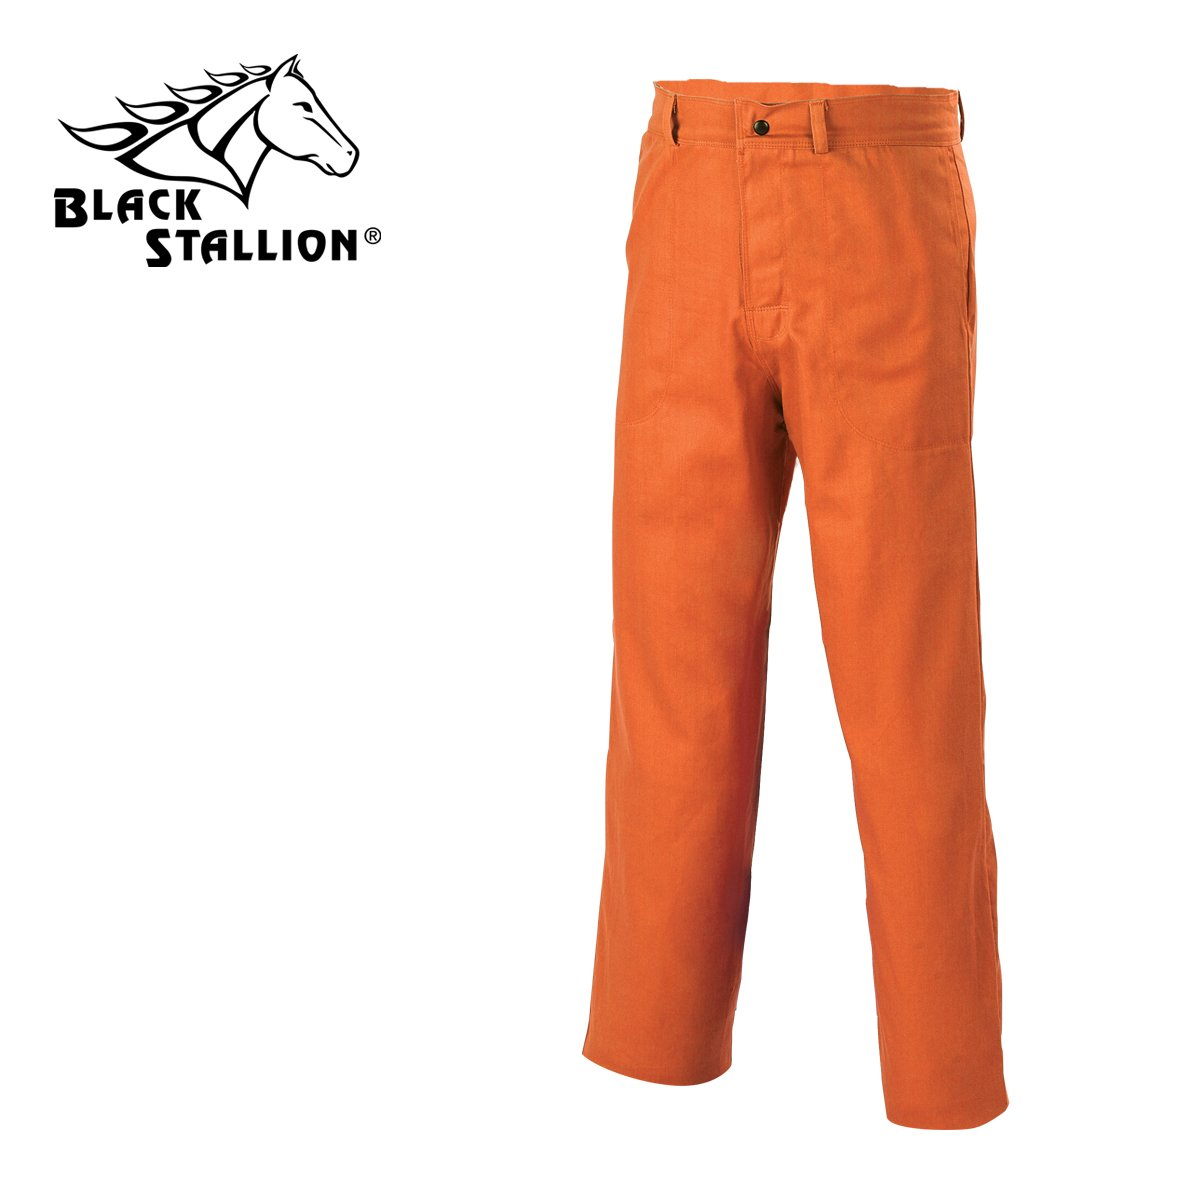 Revco Black Stallion 9 oz. FR Cotton Pants with 32'' inseam - Orange - 34''W x 32''L